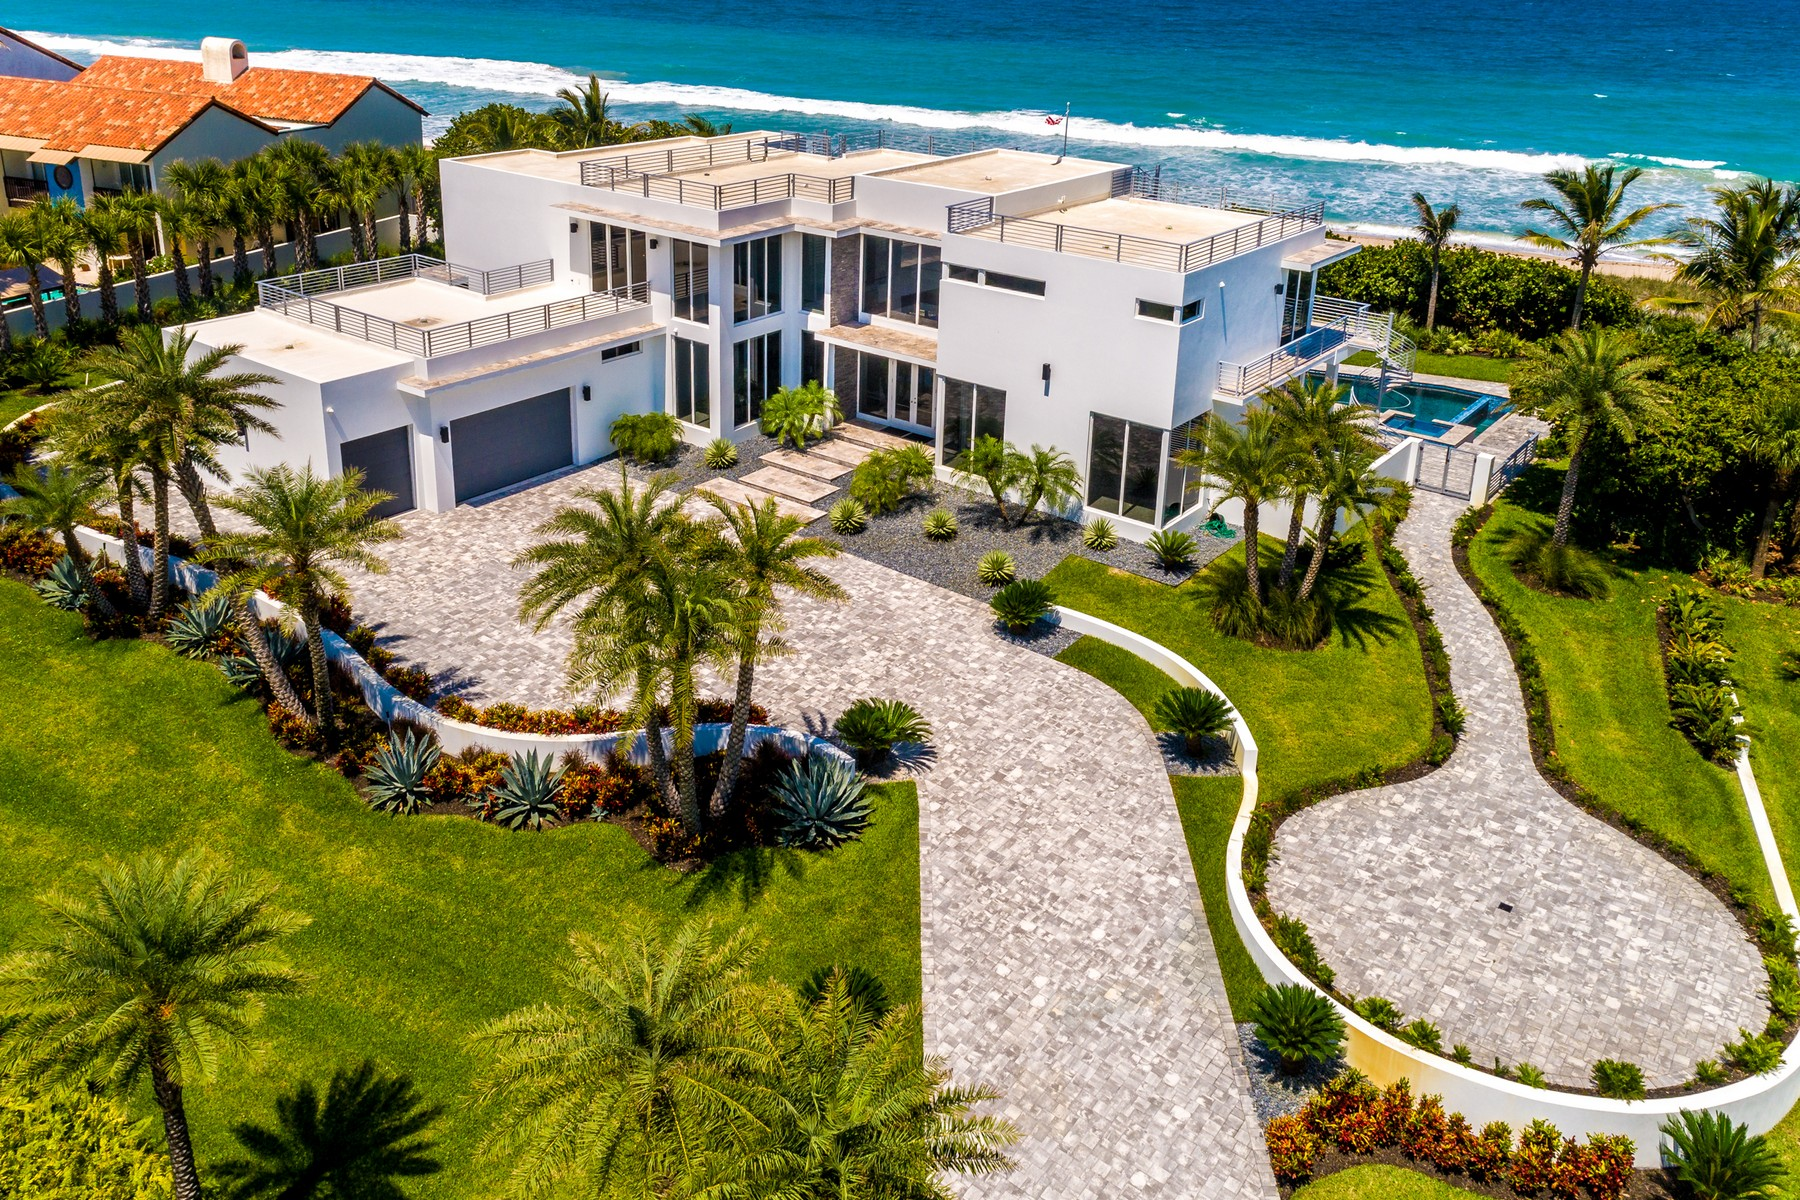 Property vì Bán tại Modern Masterpiece with Captivating Panoramic Ocean and River Views 9445 Highway A1A Melbourne Beach, Florida 32951 Hoa Kỳ